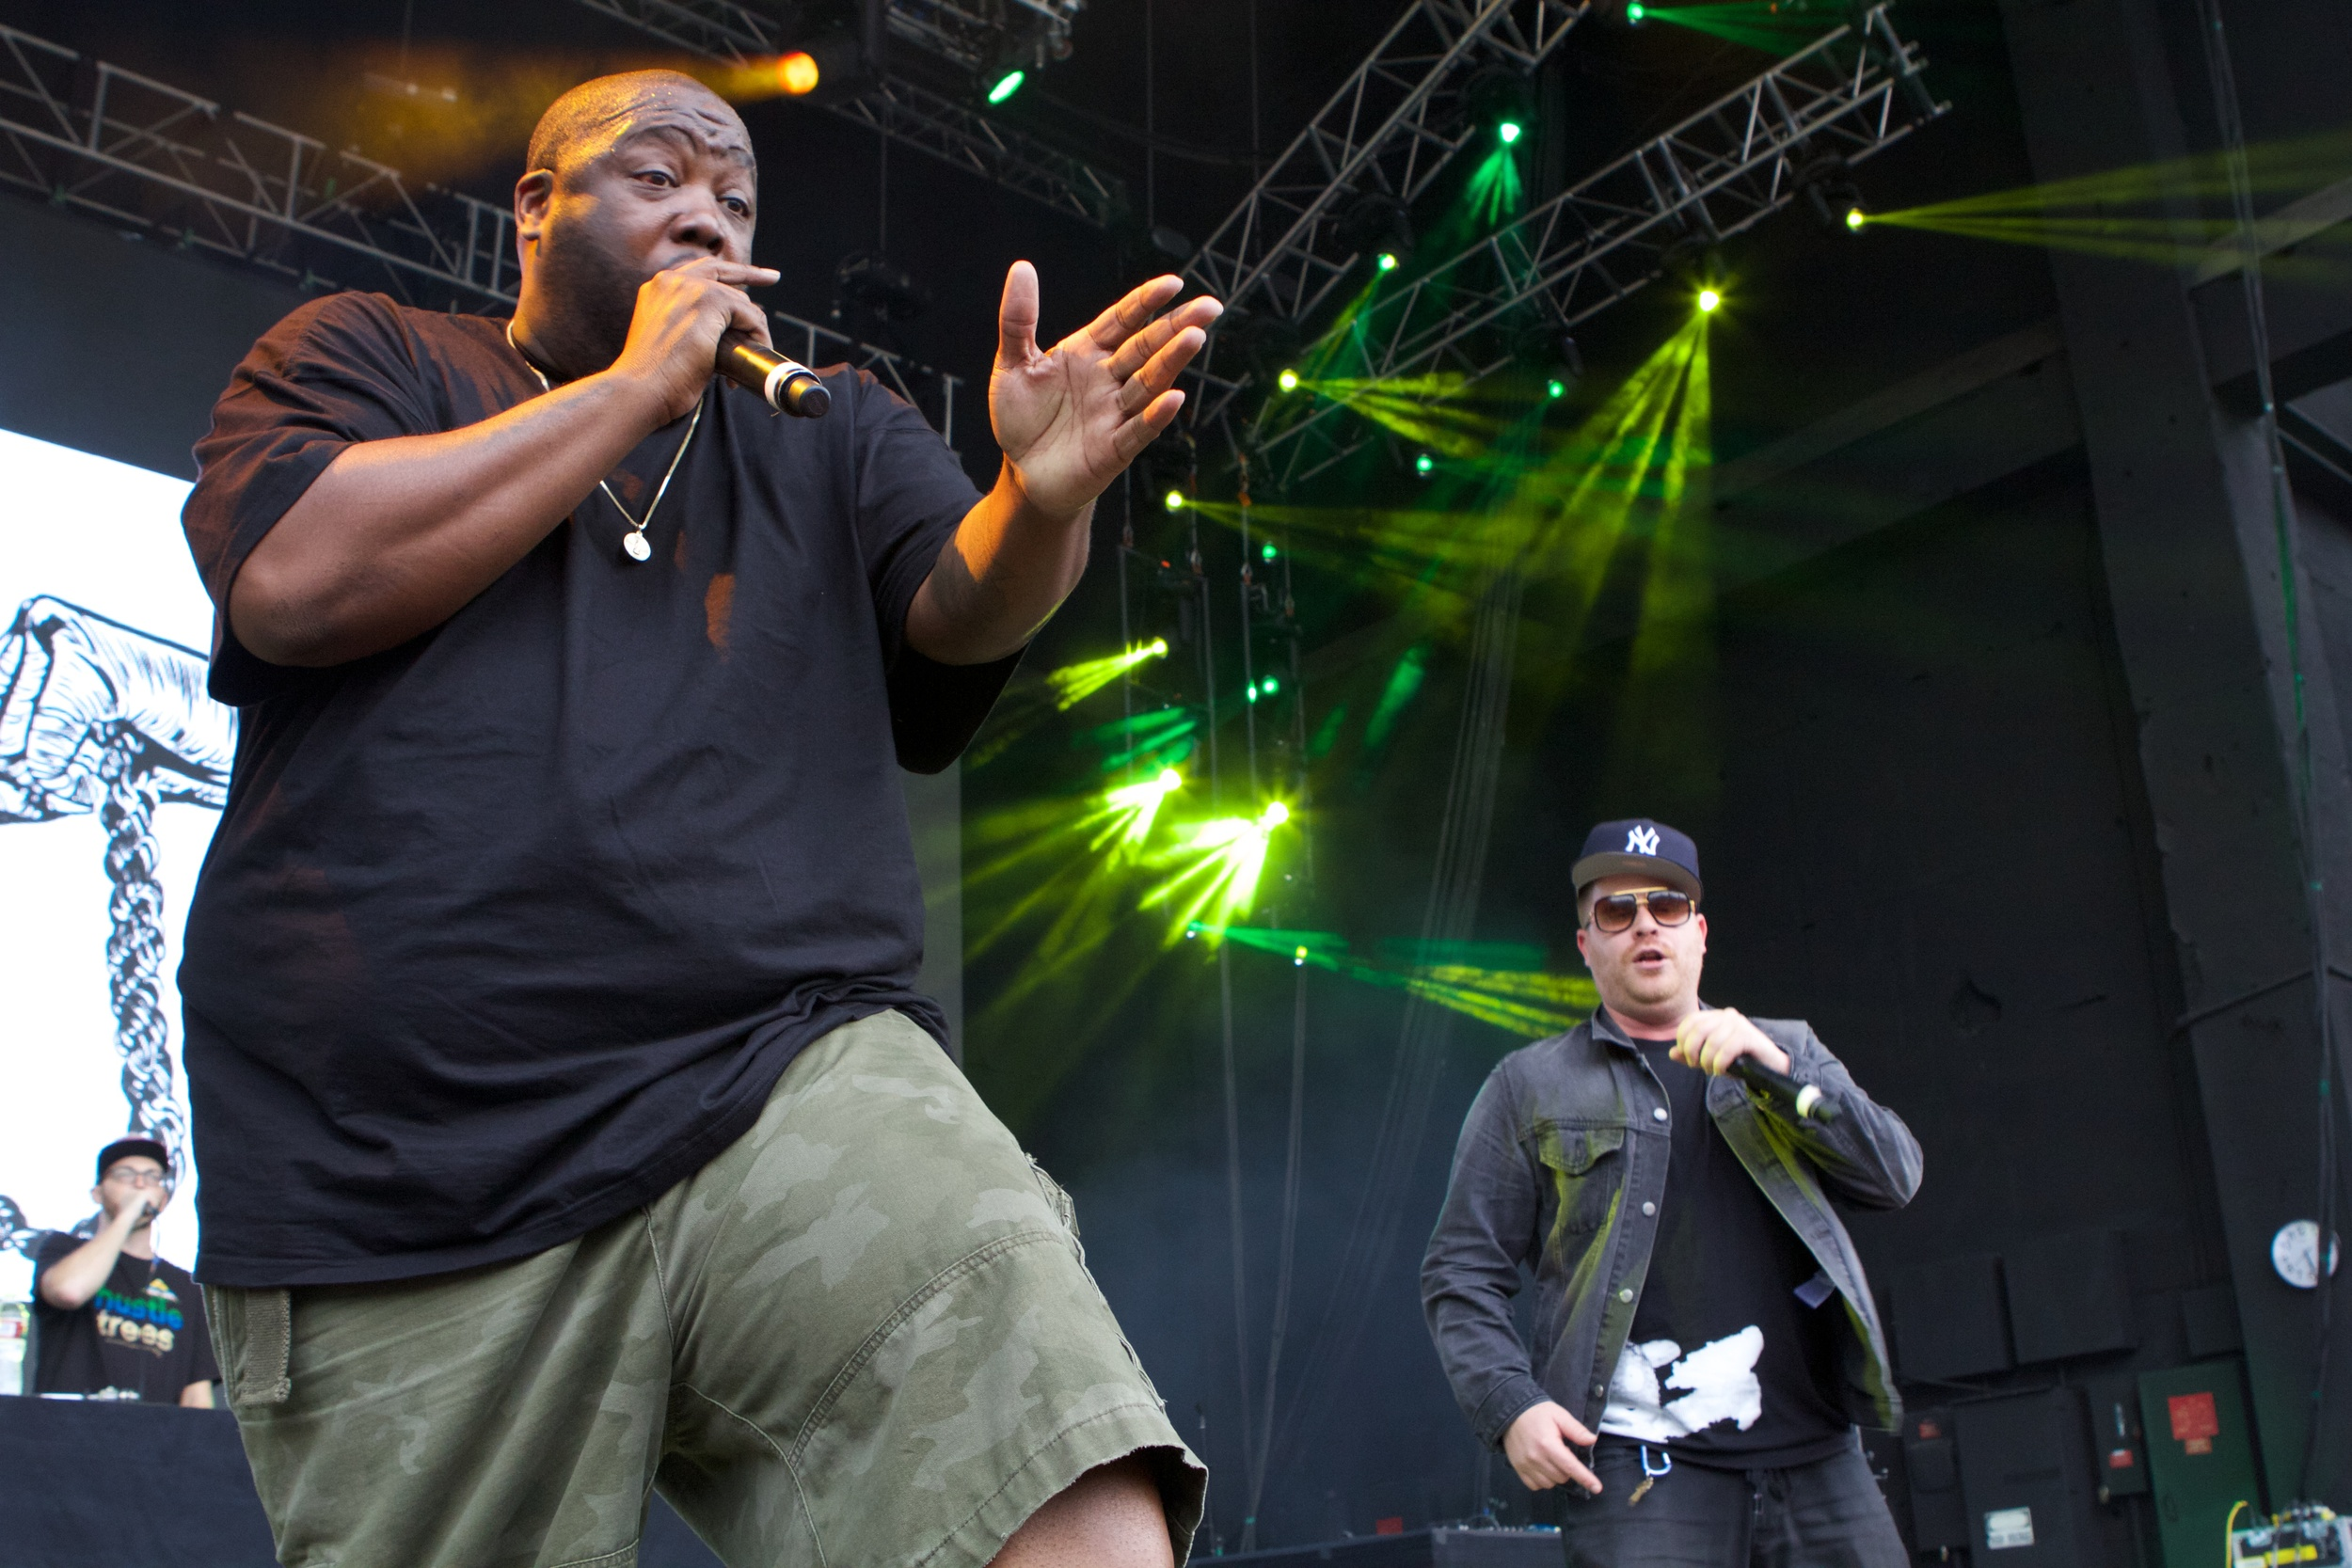 Killer Mike and El-P make up Run The Jewels (Photo Credit: Robert Castro)